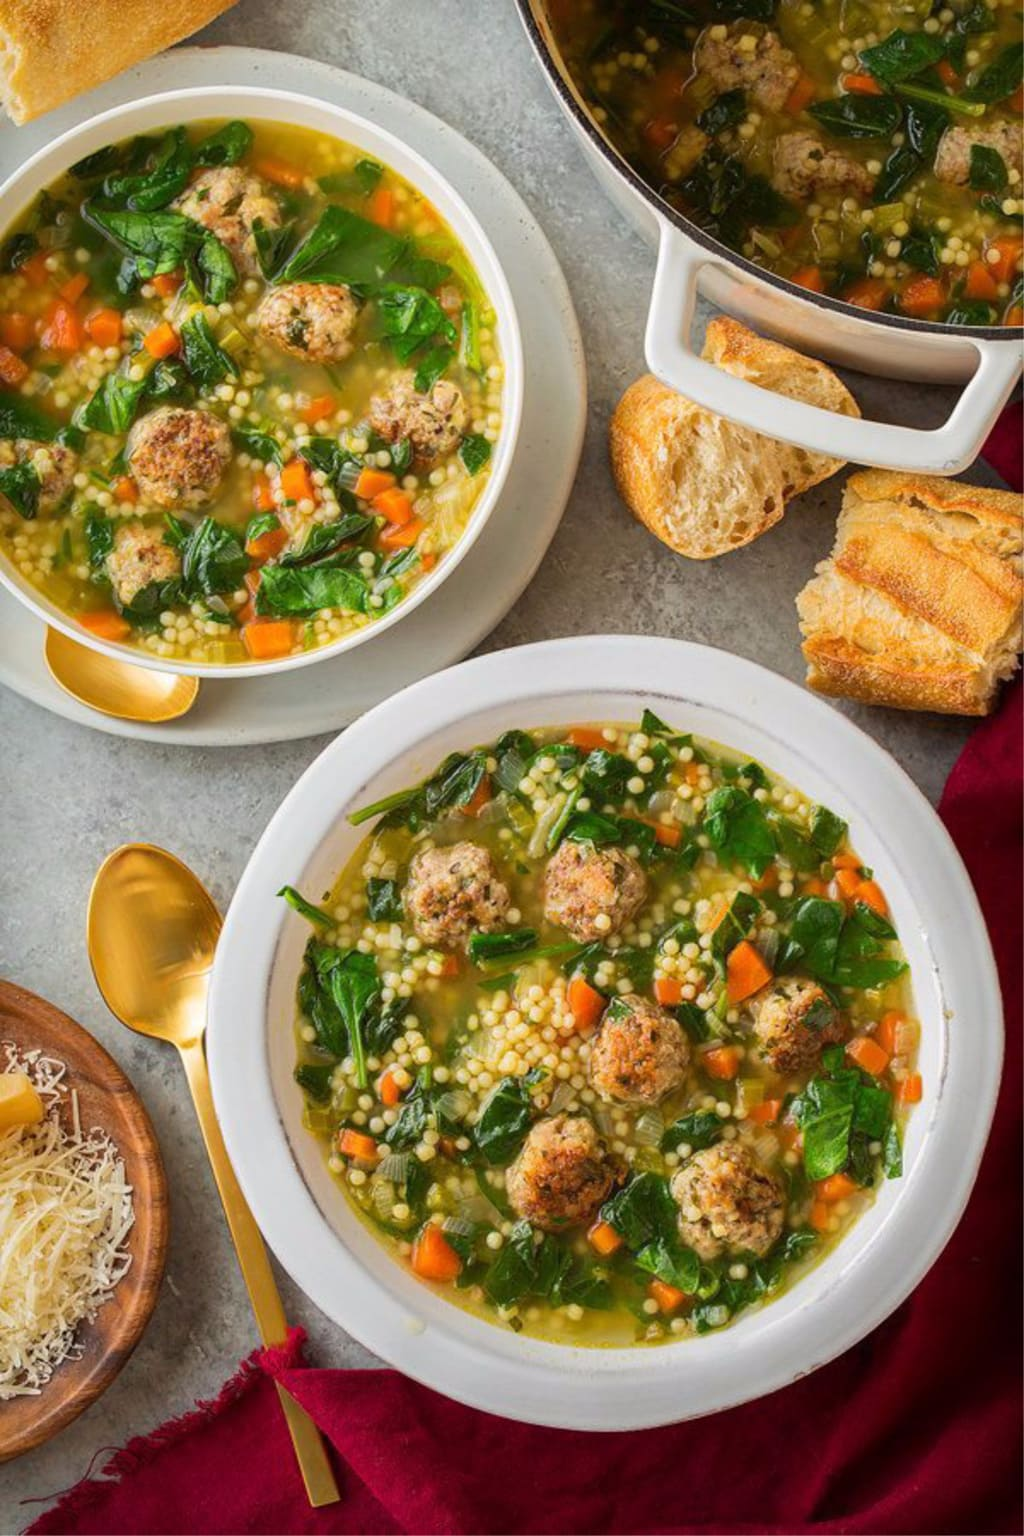 Overhead picture of Italian Wedding Soup in white bowls with bread